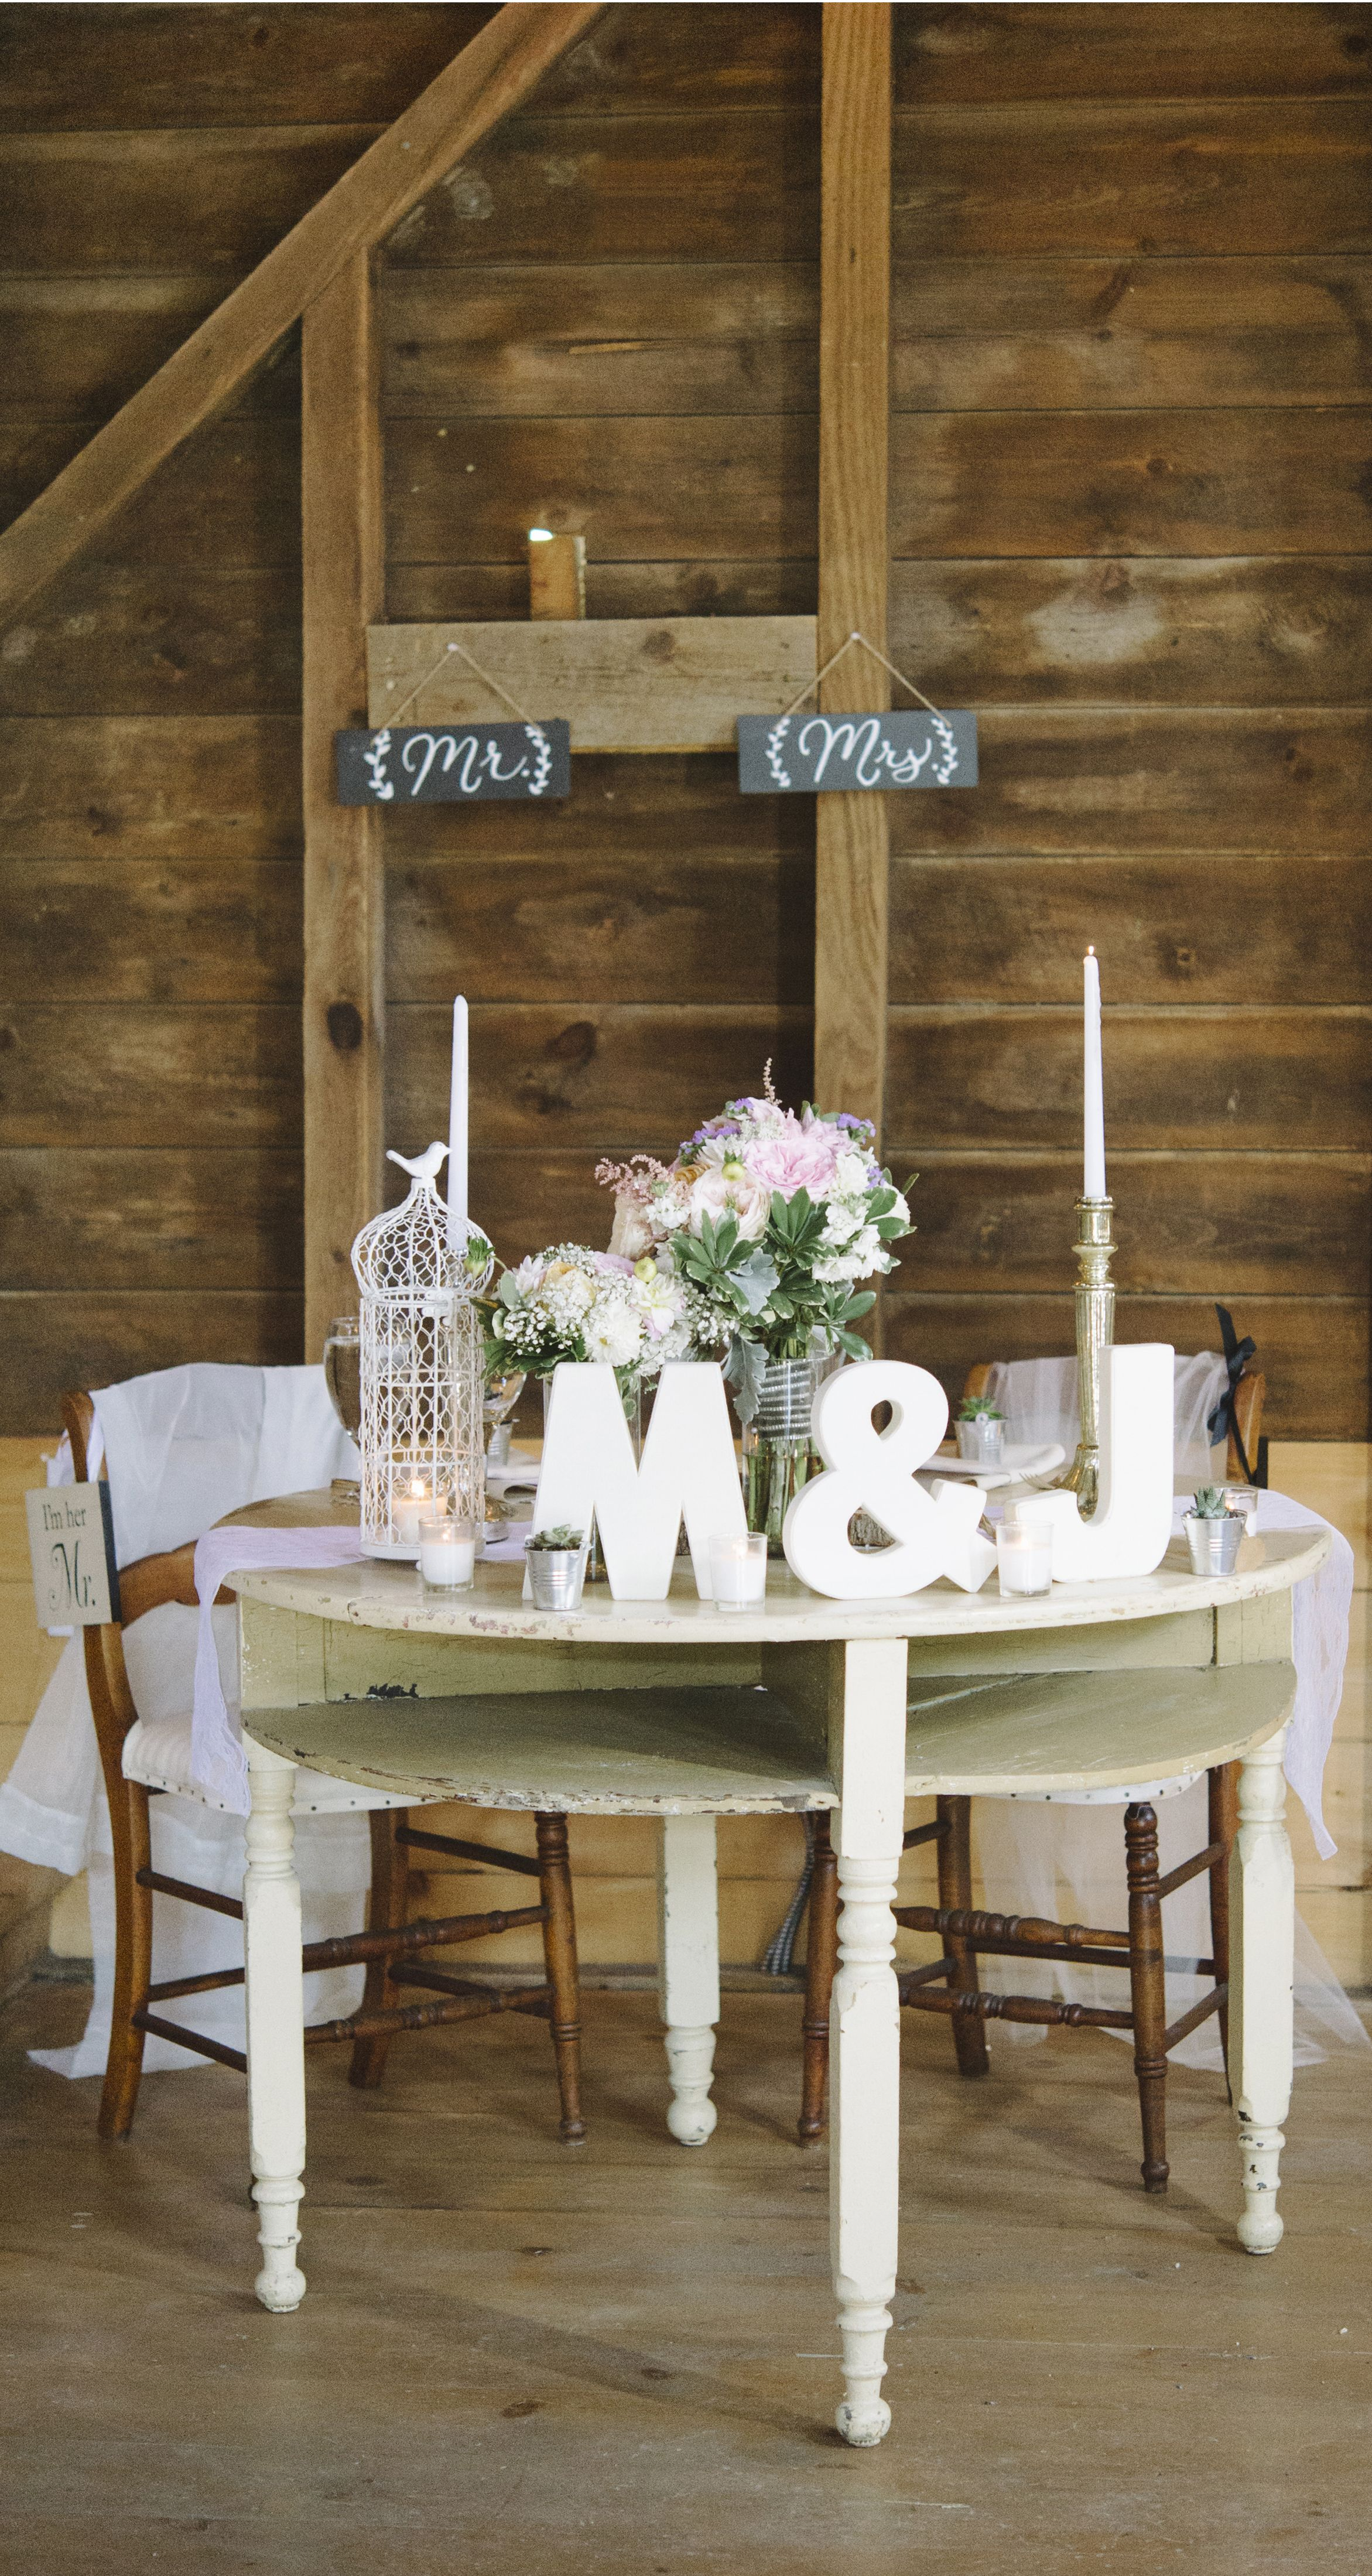 Romantic And Rustic Bride And Groom Table Wedding Decor Idea! Photo By  Http:/